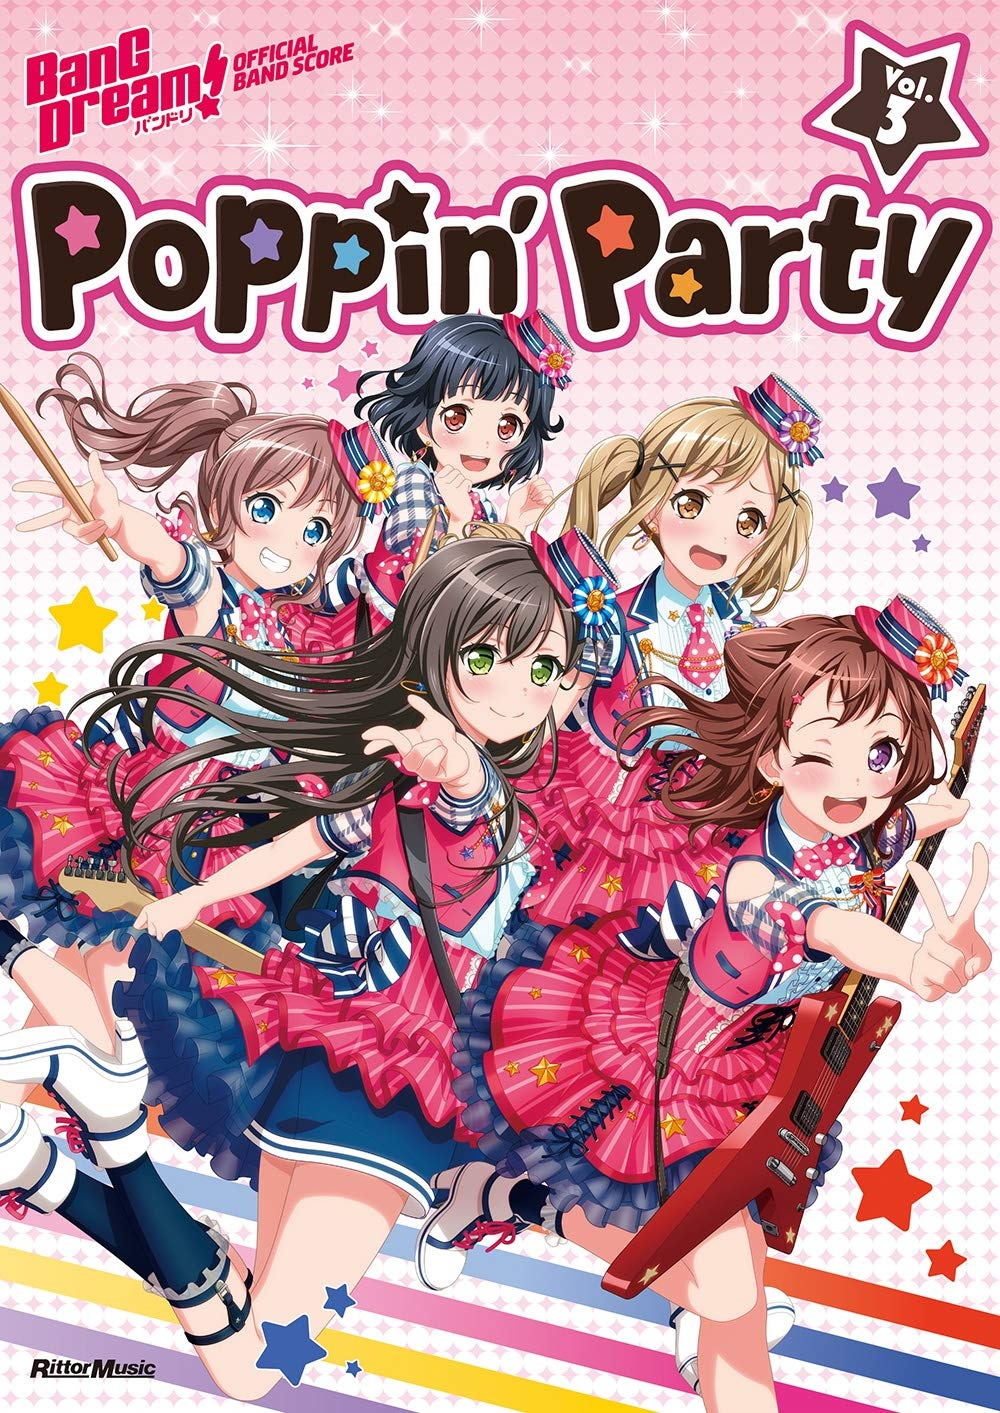 BanG Dream!: Poppin Party